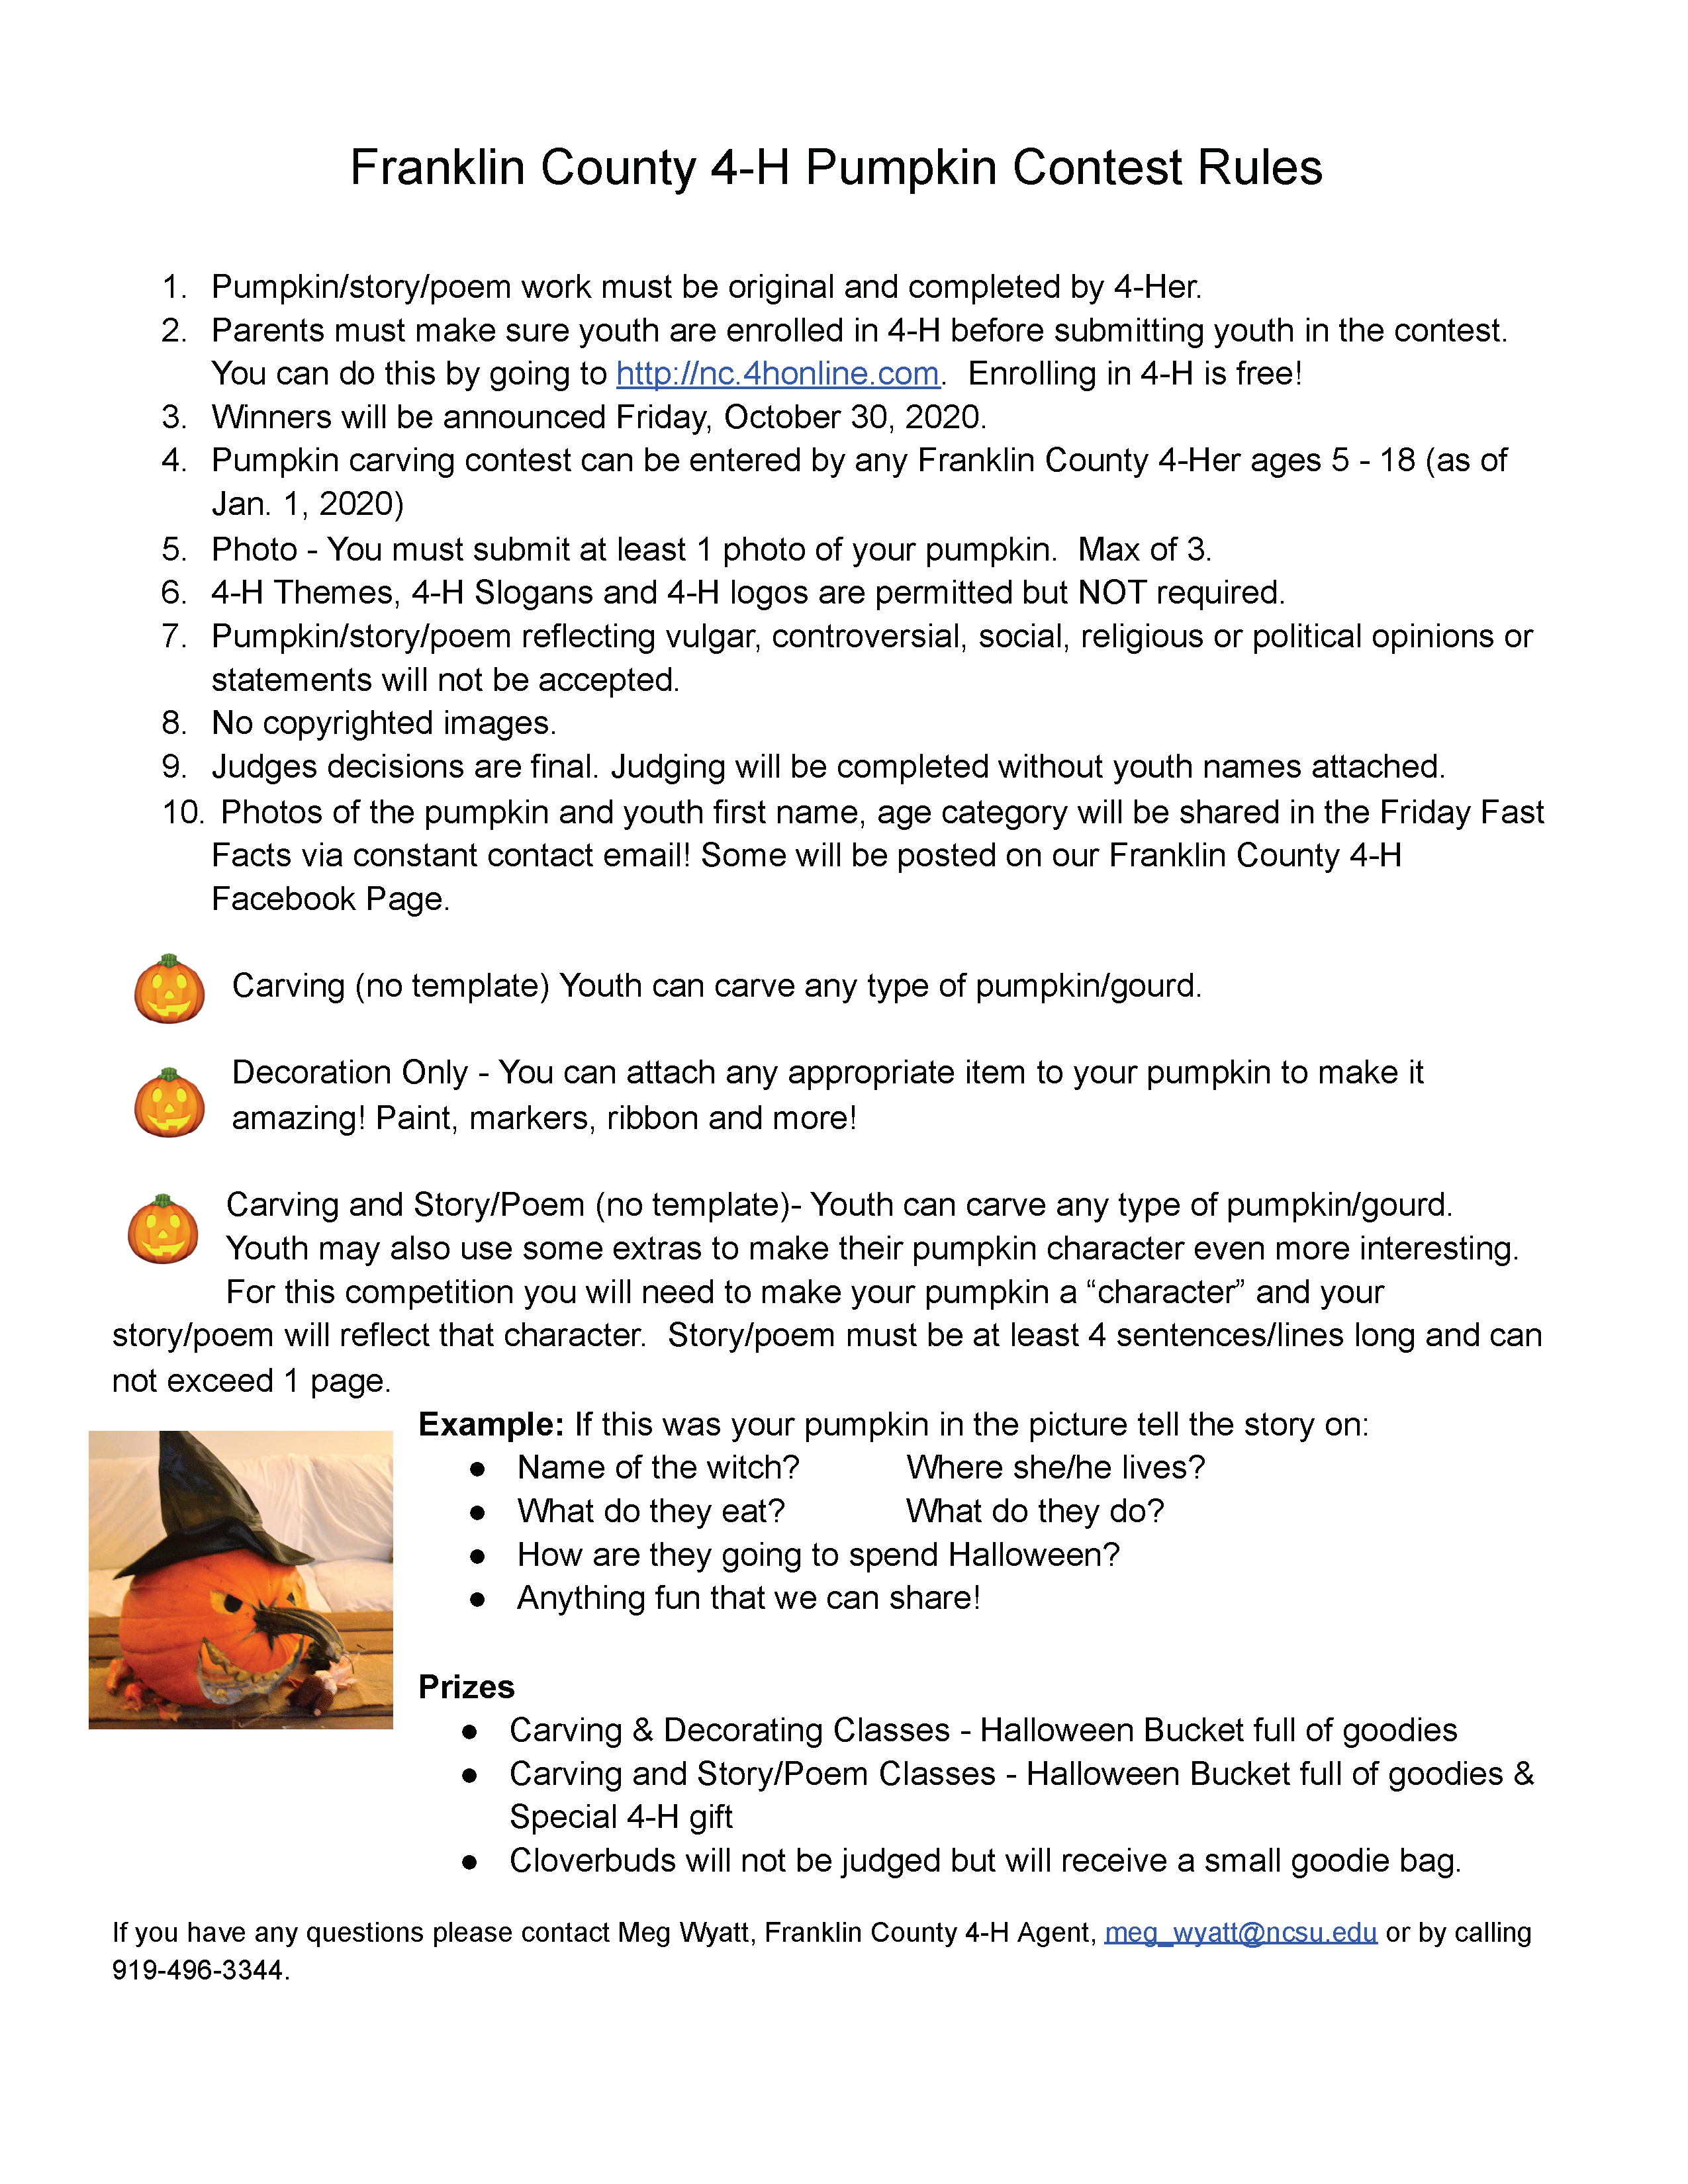 Franklin 4-H Pumpkin Carving, Decorating & Story Contest Rules